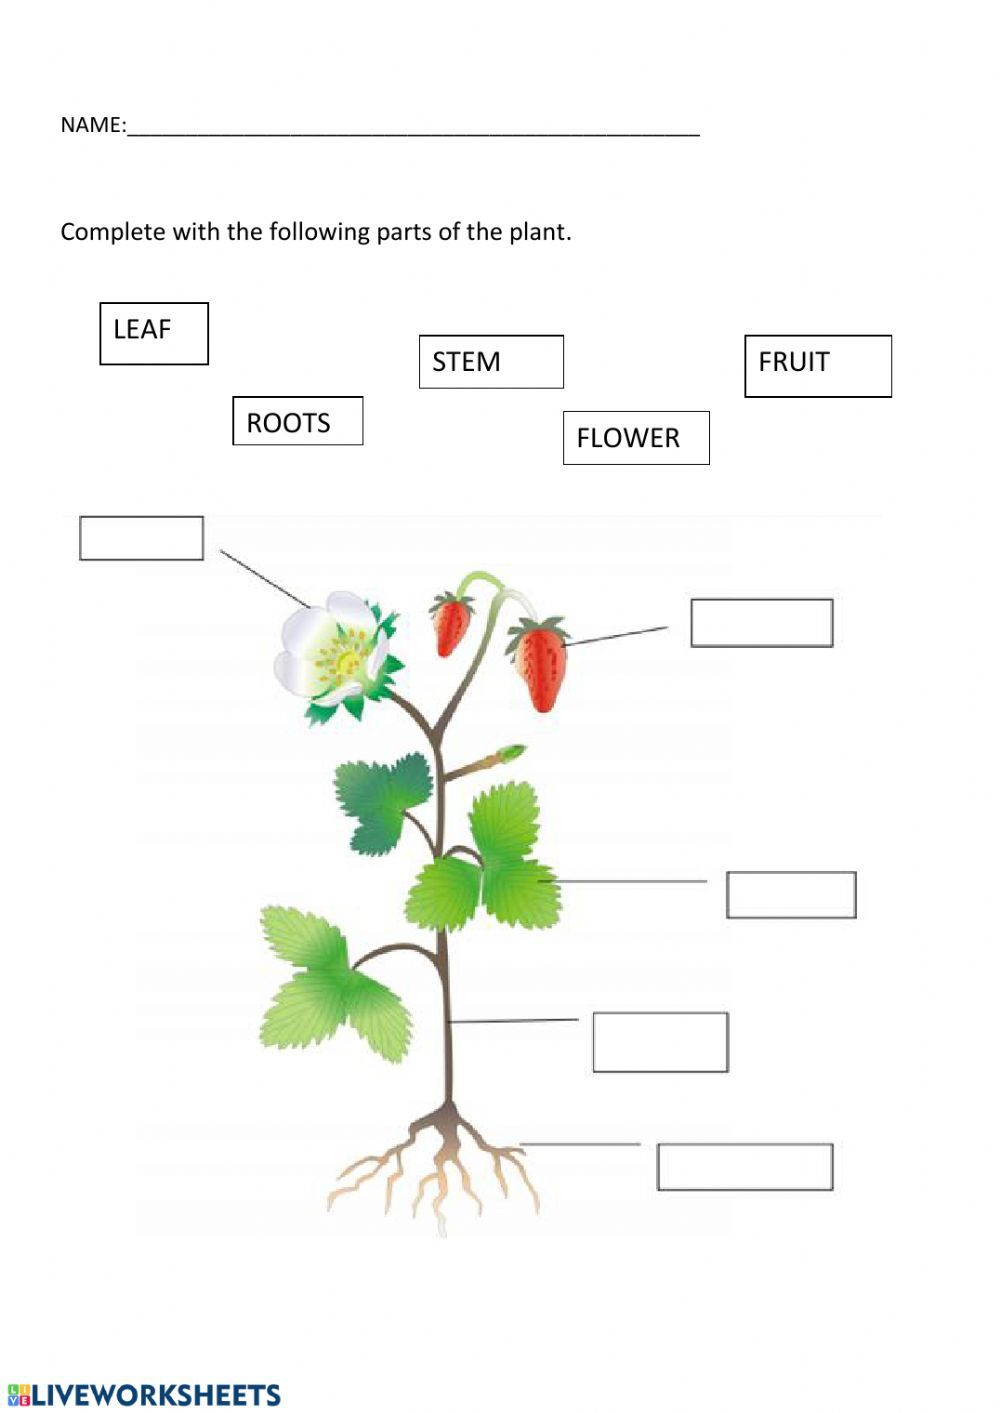 Plants Interactive And Downloadable Worksheet You Can Do The Exercises Online Or Download The Work 1st Grade Worksheets Plants Worksheets 2nd Grade Worksheets